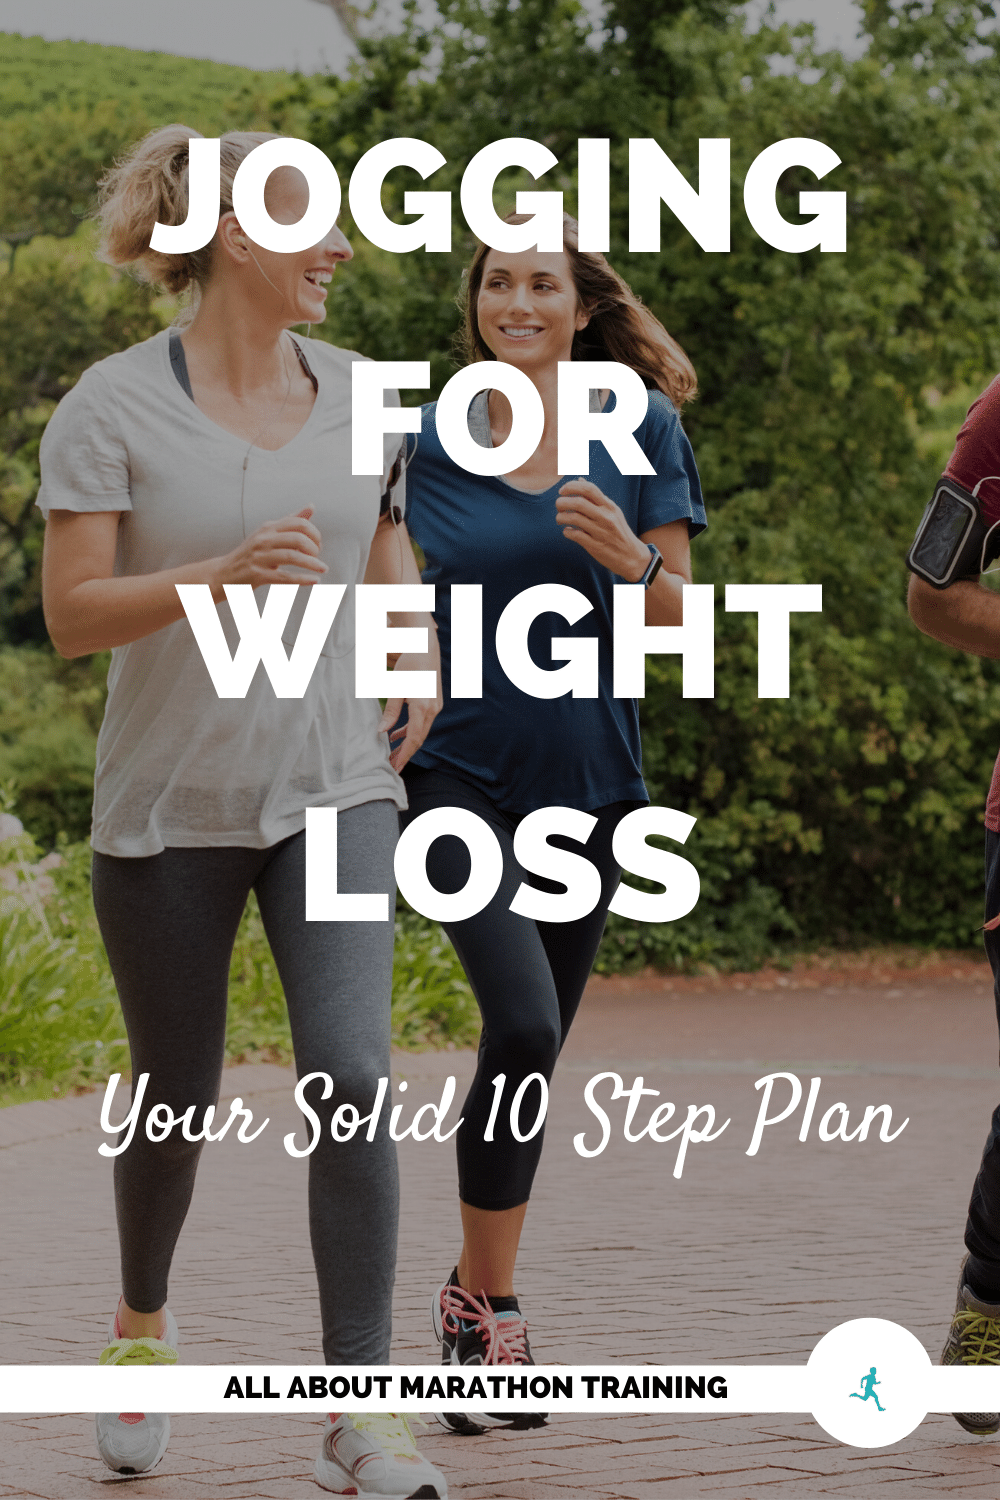 Your Solid 10 Step Plan